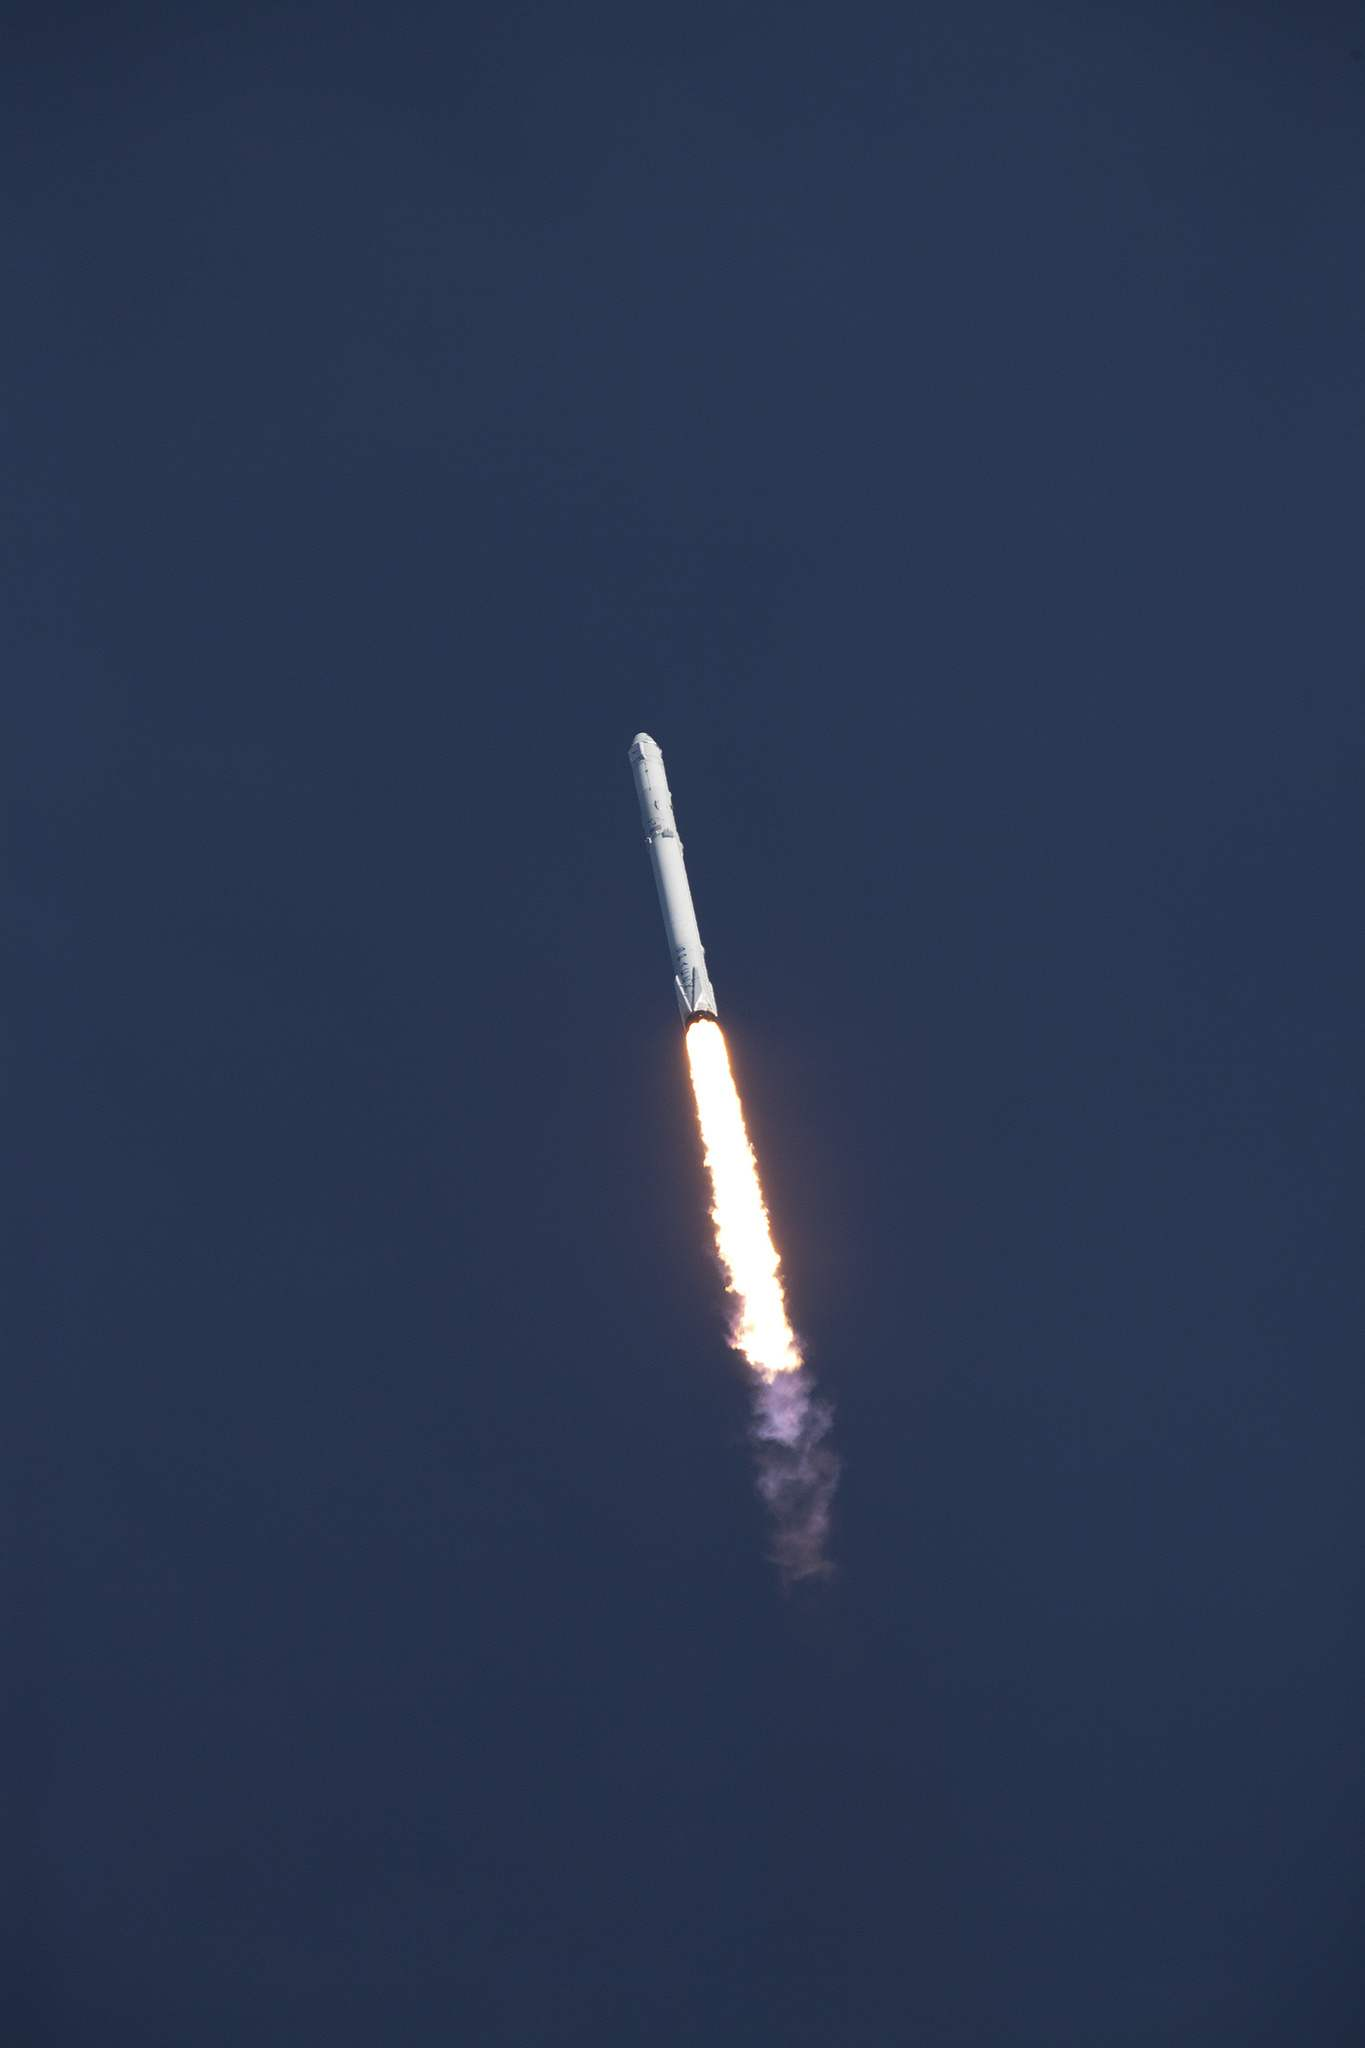 falcon 9 rocket4 SpaceX CRS 8 Mission by Elon Musk